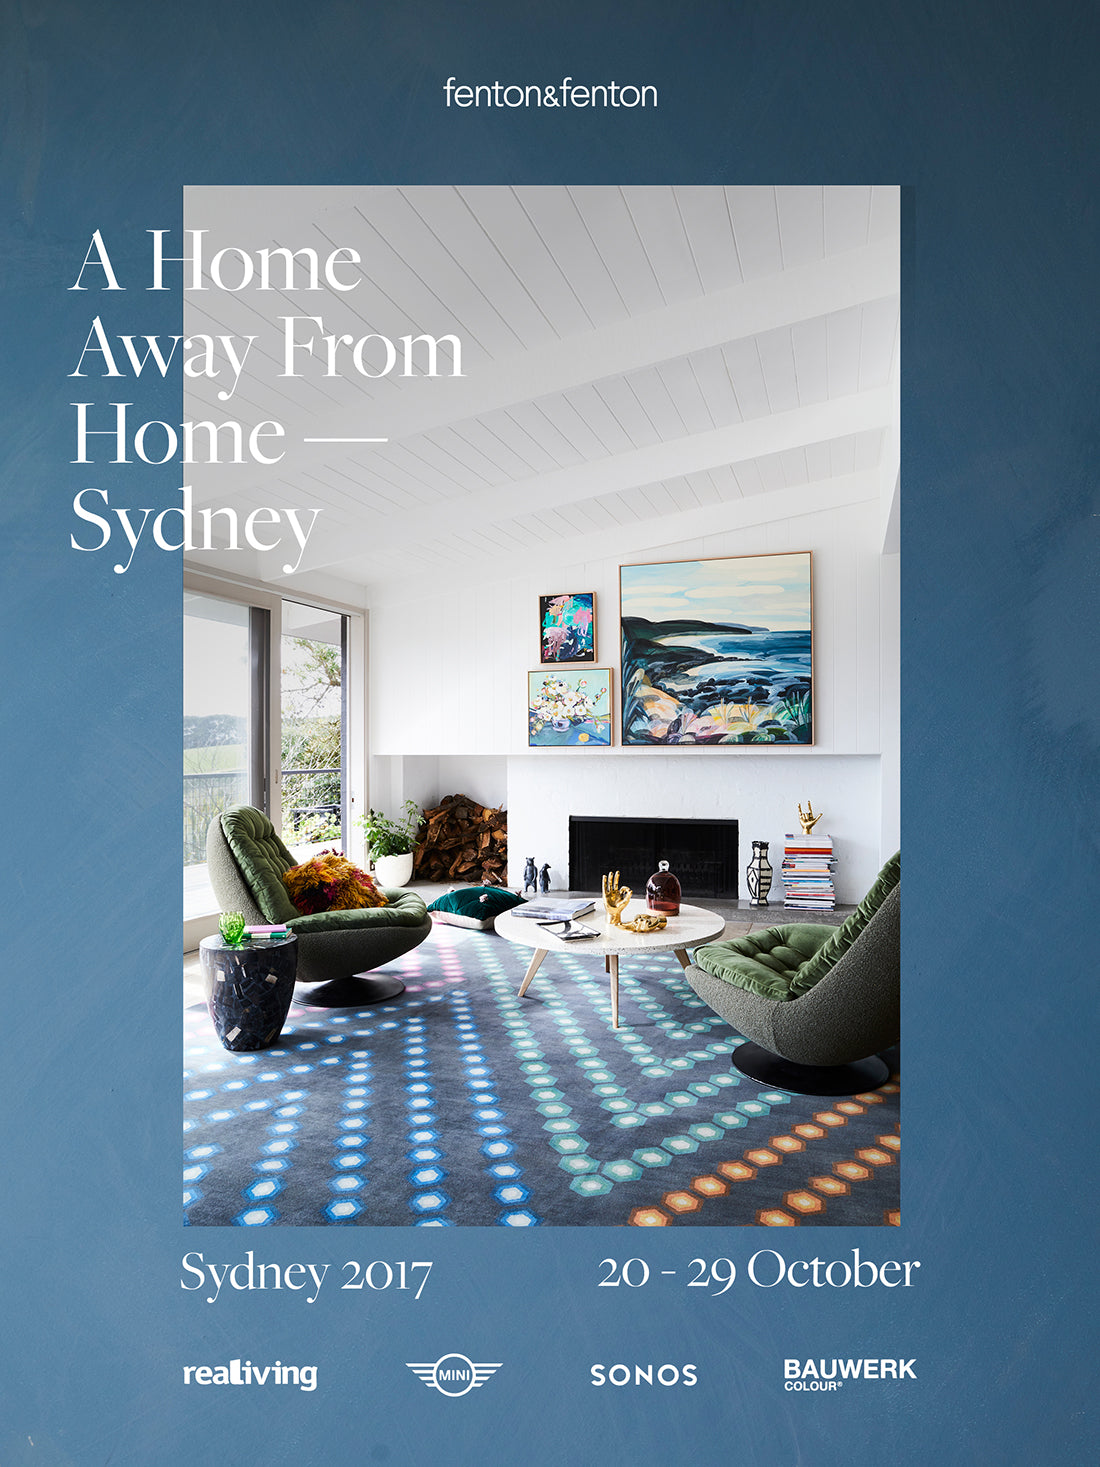 Fenton \u0026 Fenton \u2013 A Home Away From Home - Sydney